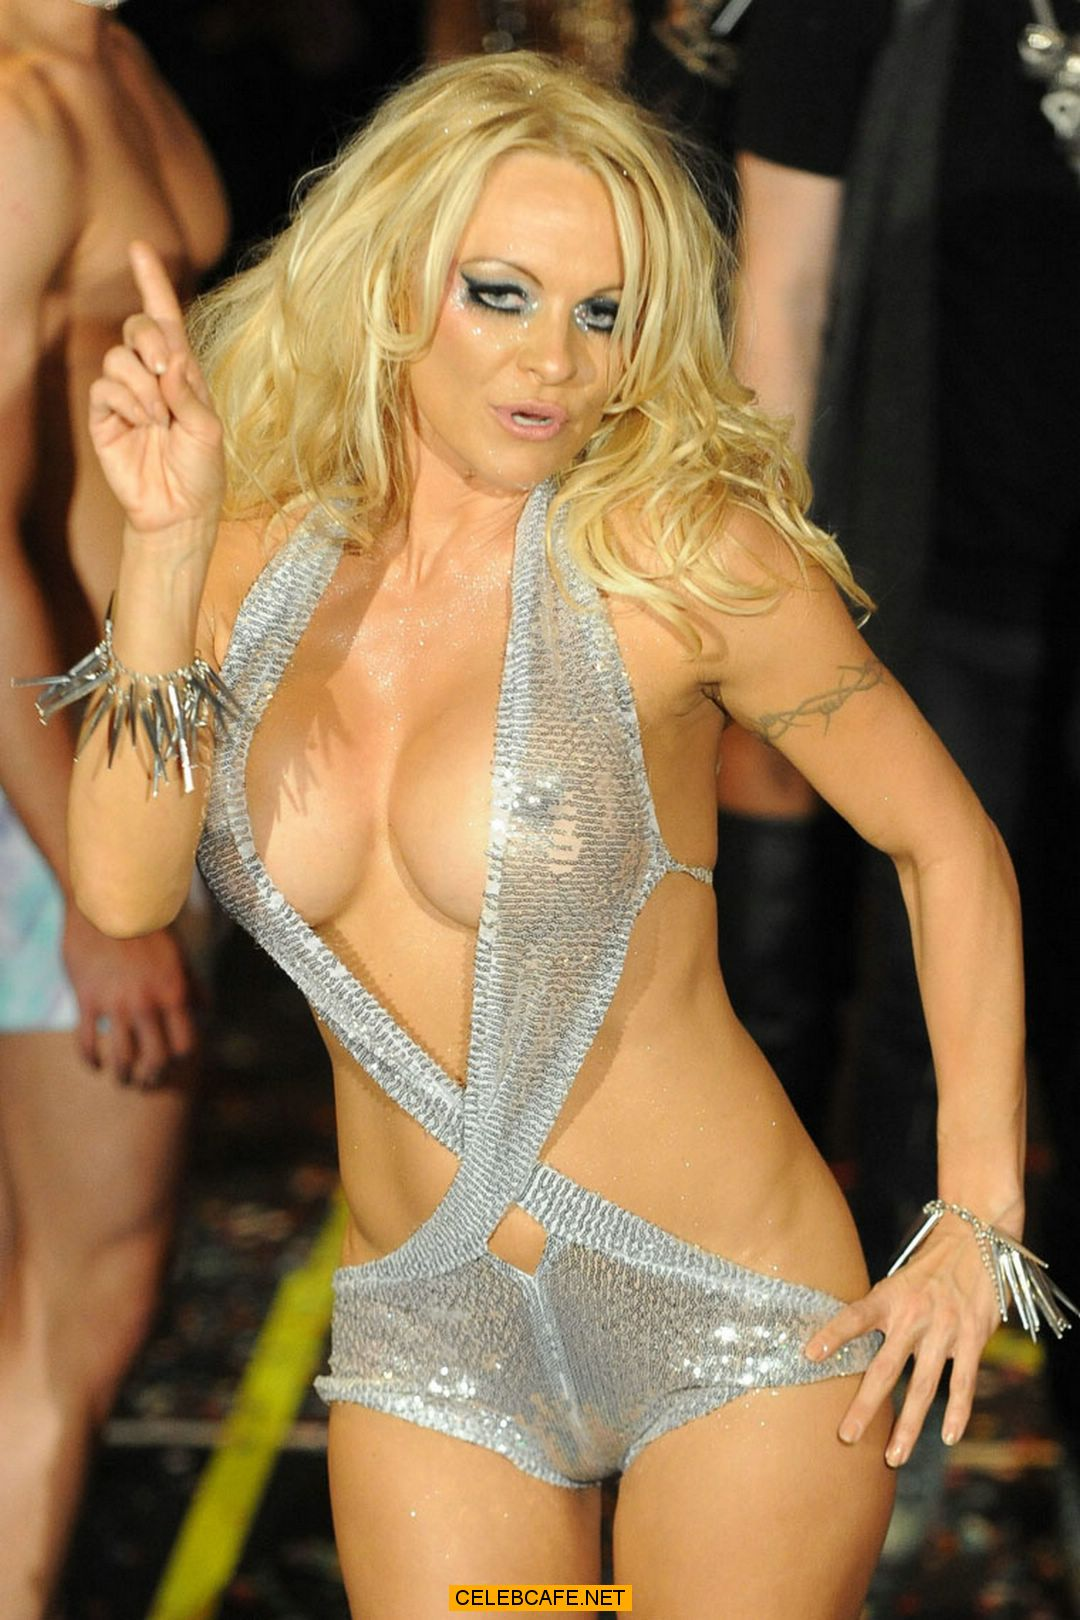 topless and nude celebrity paparazzi pics oops nipslip cleavage